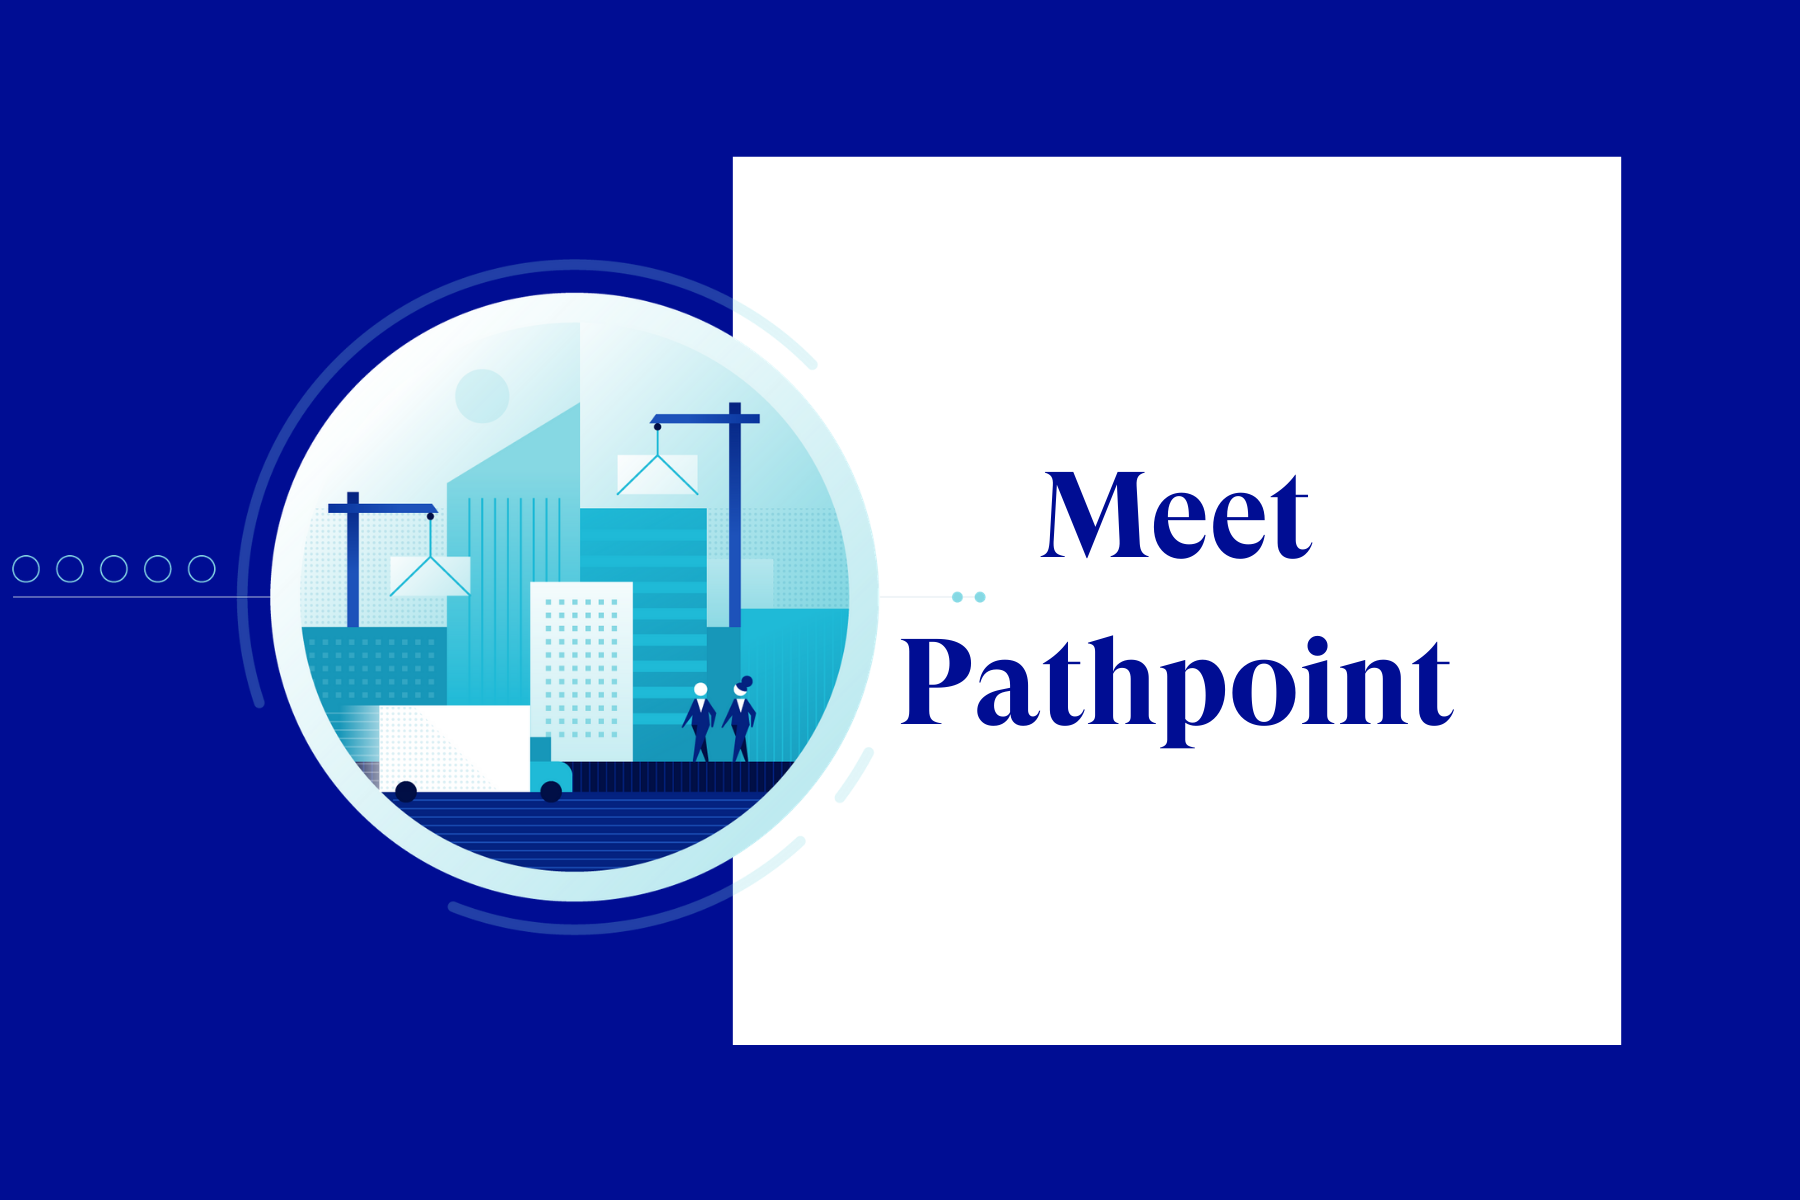 Meet Pathpoint